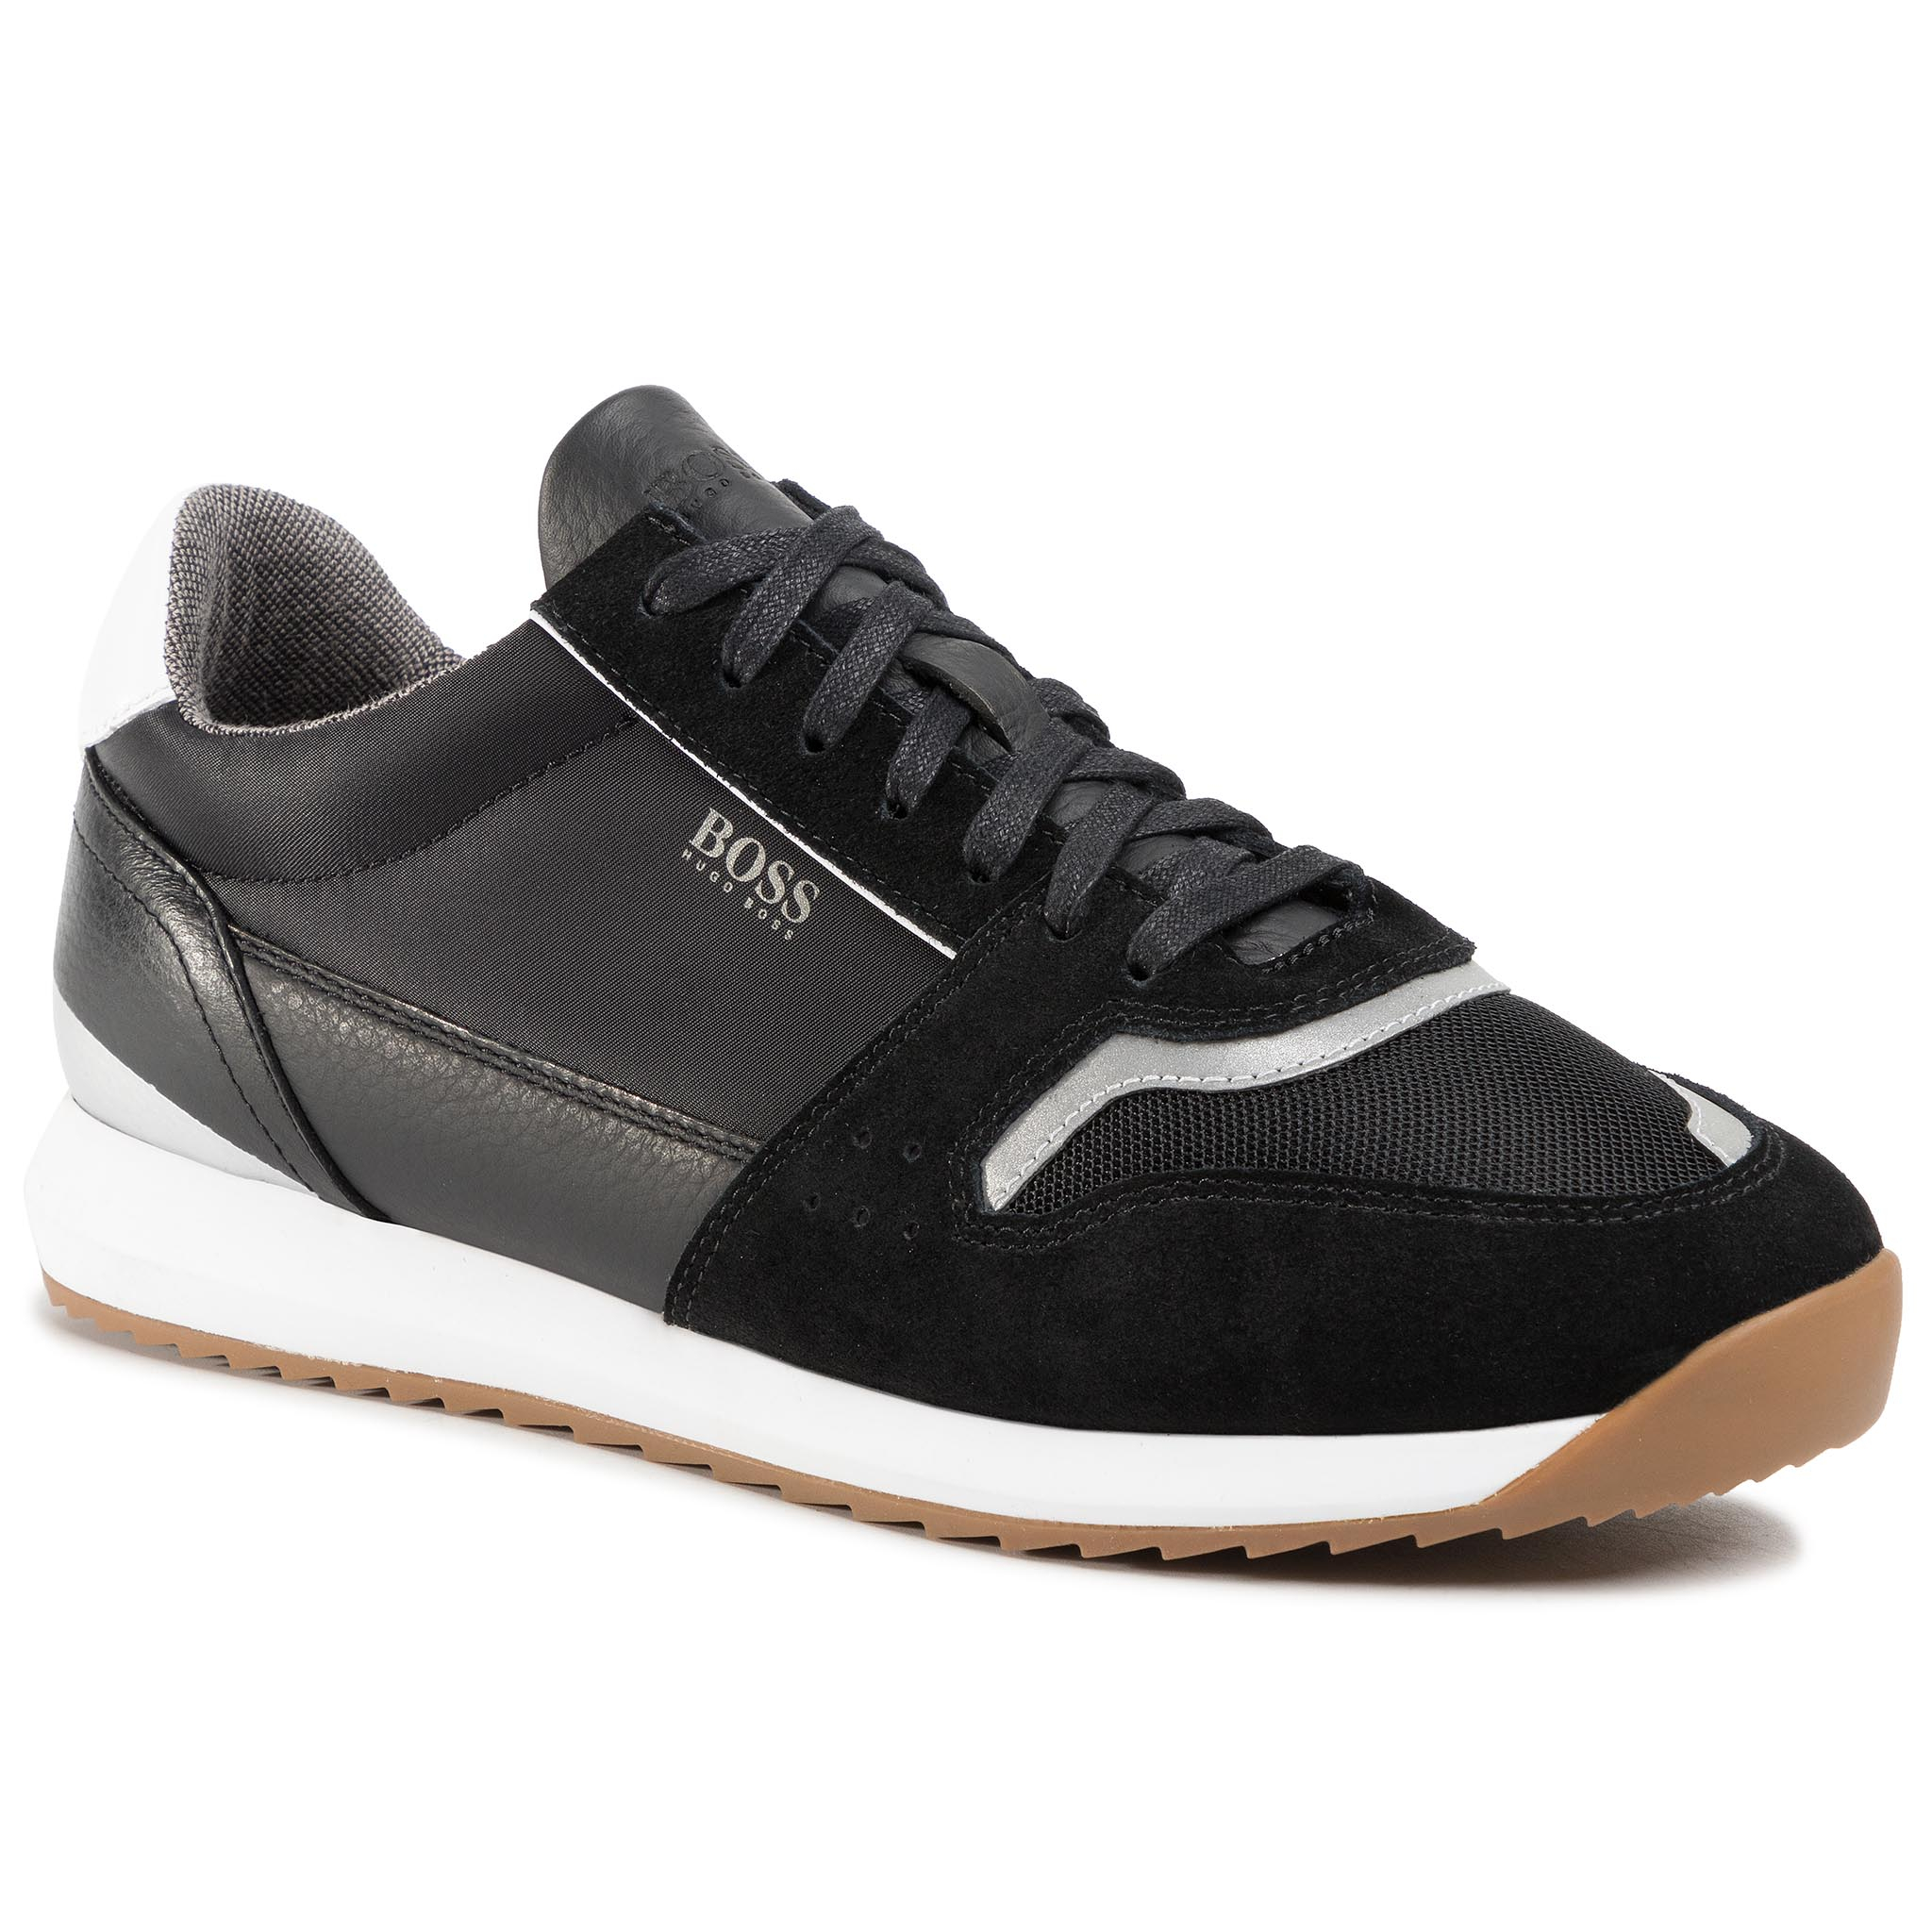 Sneakers BOSS - Sonic 50428381 10214574 01 Black 001